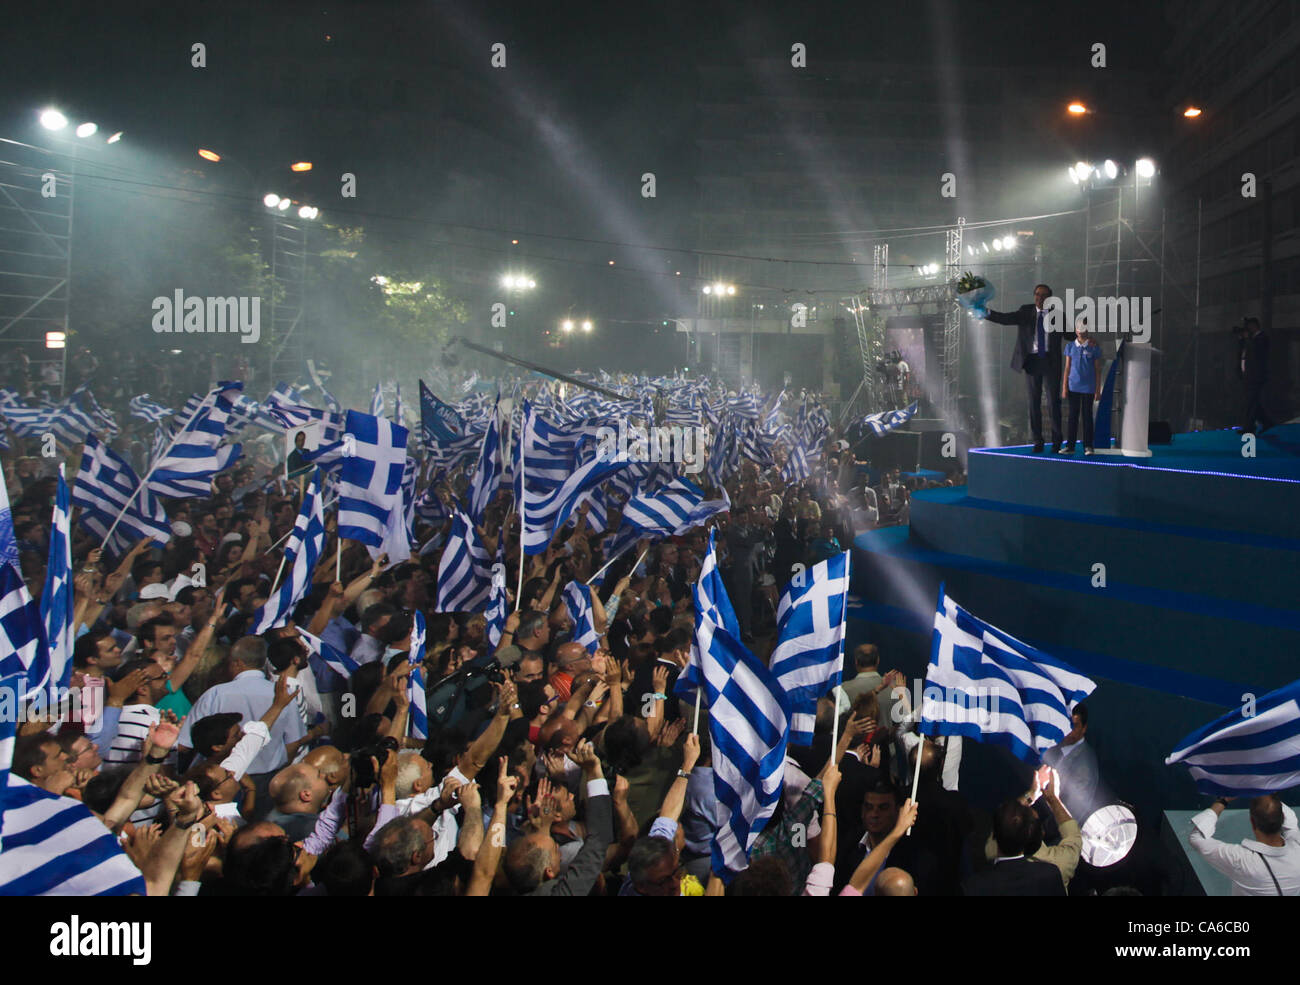 June 16, 2012 - Athens, Greece - New Democracy party leader, Antonis Samaras,waves to his supporters at the end Stock Photo